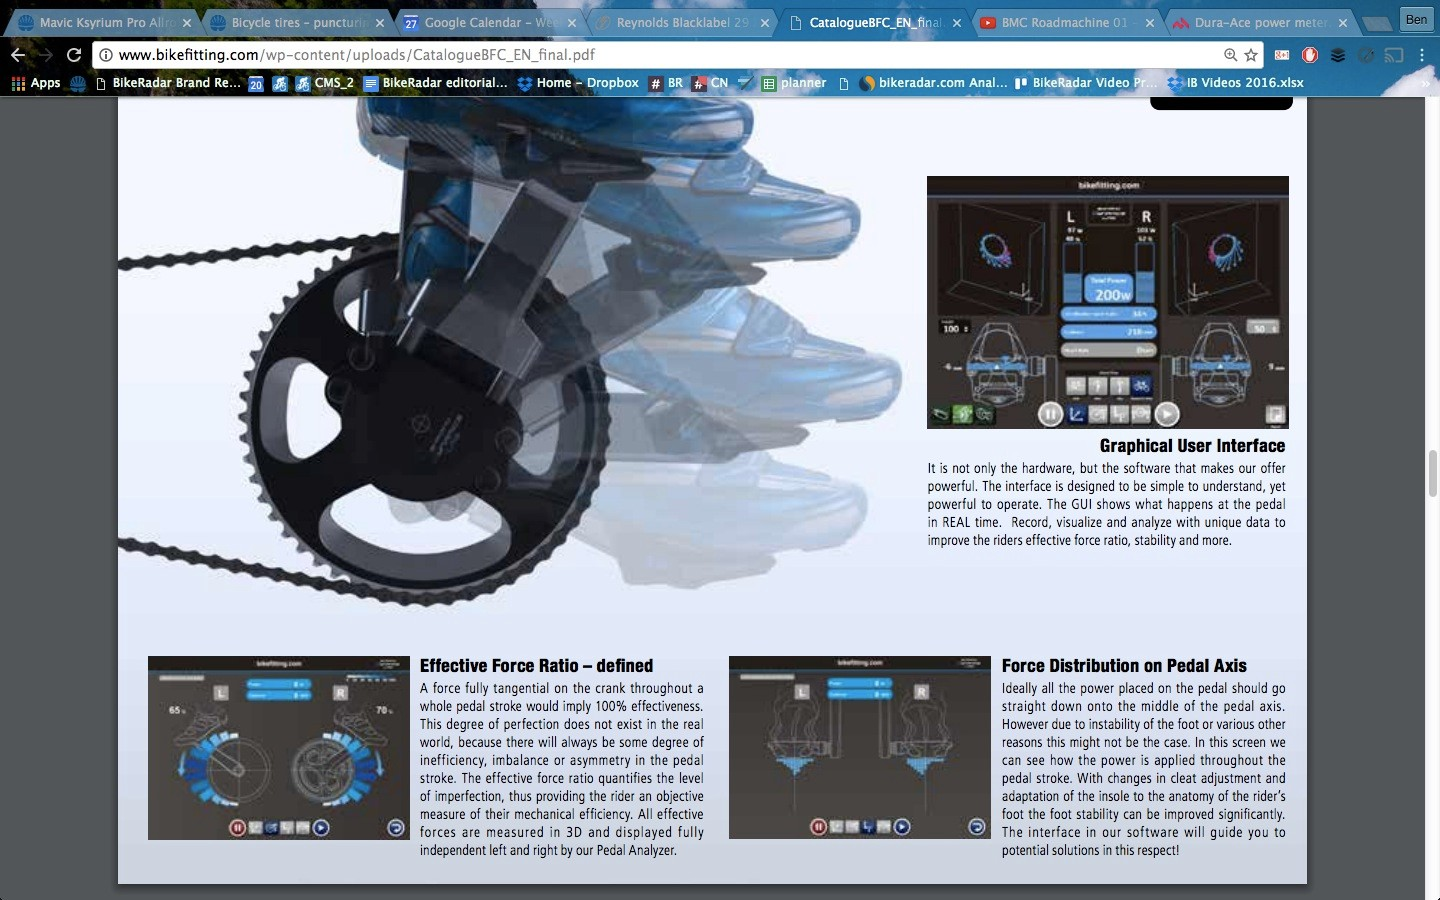 Shimano's Bikefitting.com studio hardware and software measure pedaling dynamics in a host of ways, looking at directional force every 7 degrees, plus how centered force is over each pedal